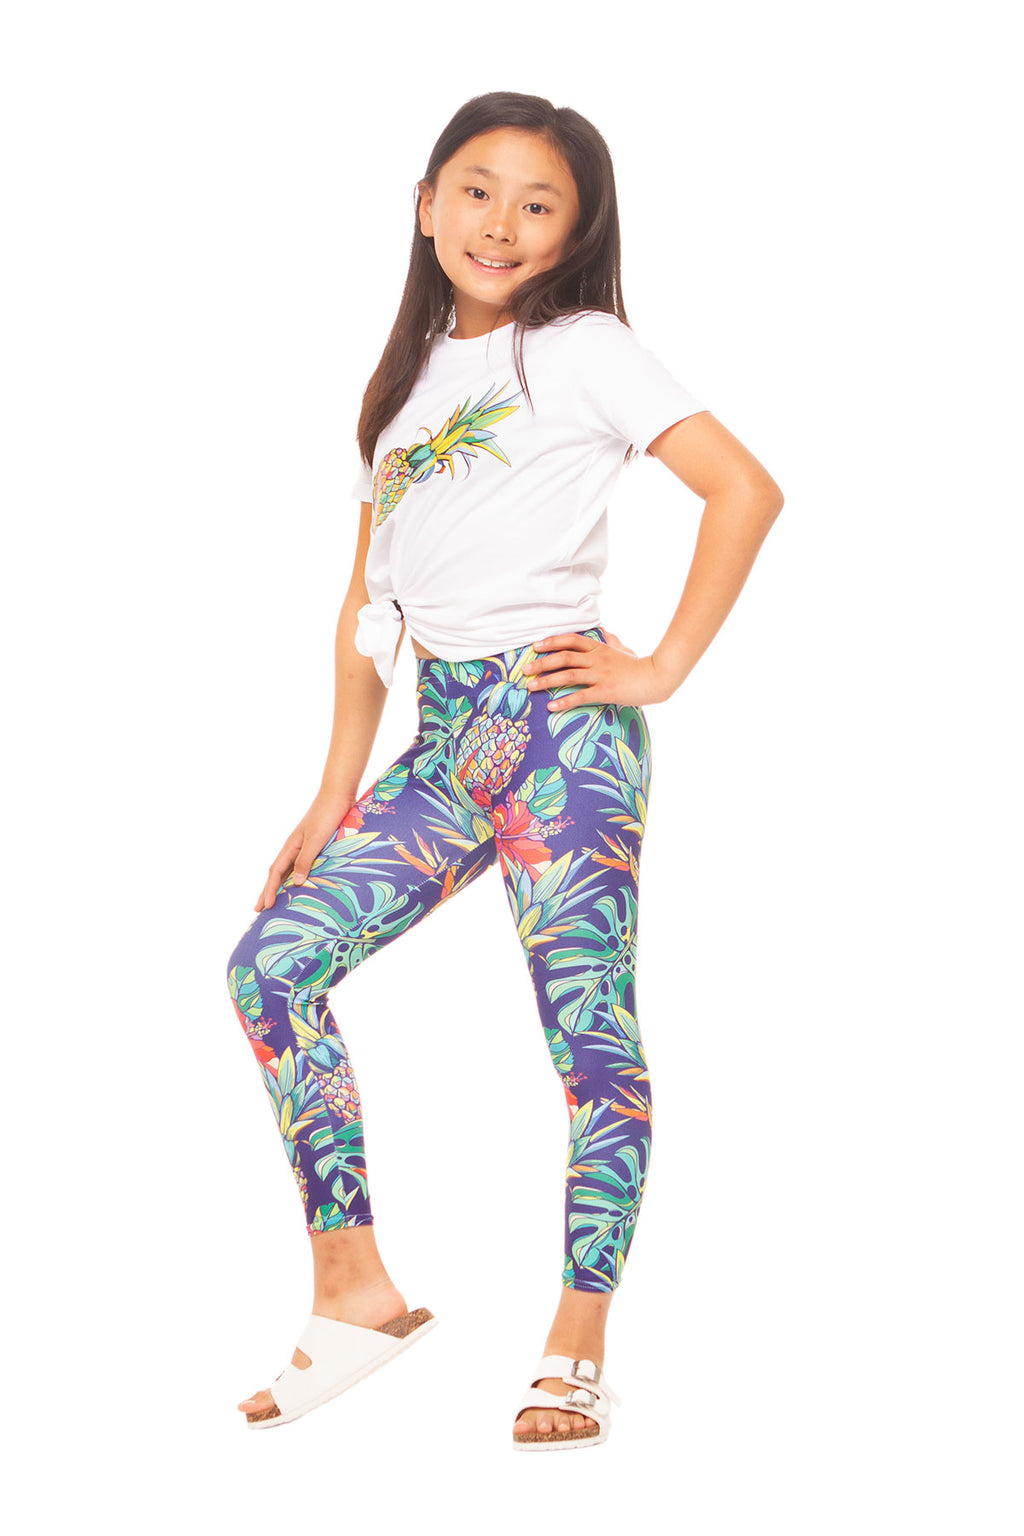 The Aloha Girls Leggings